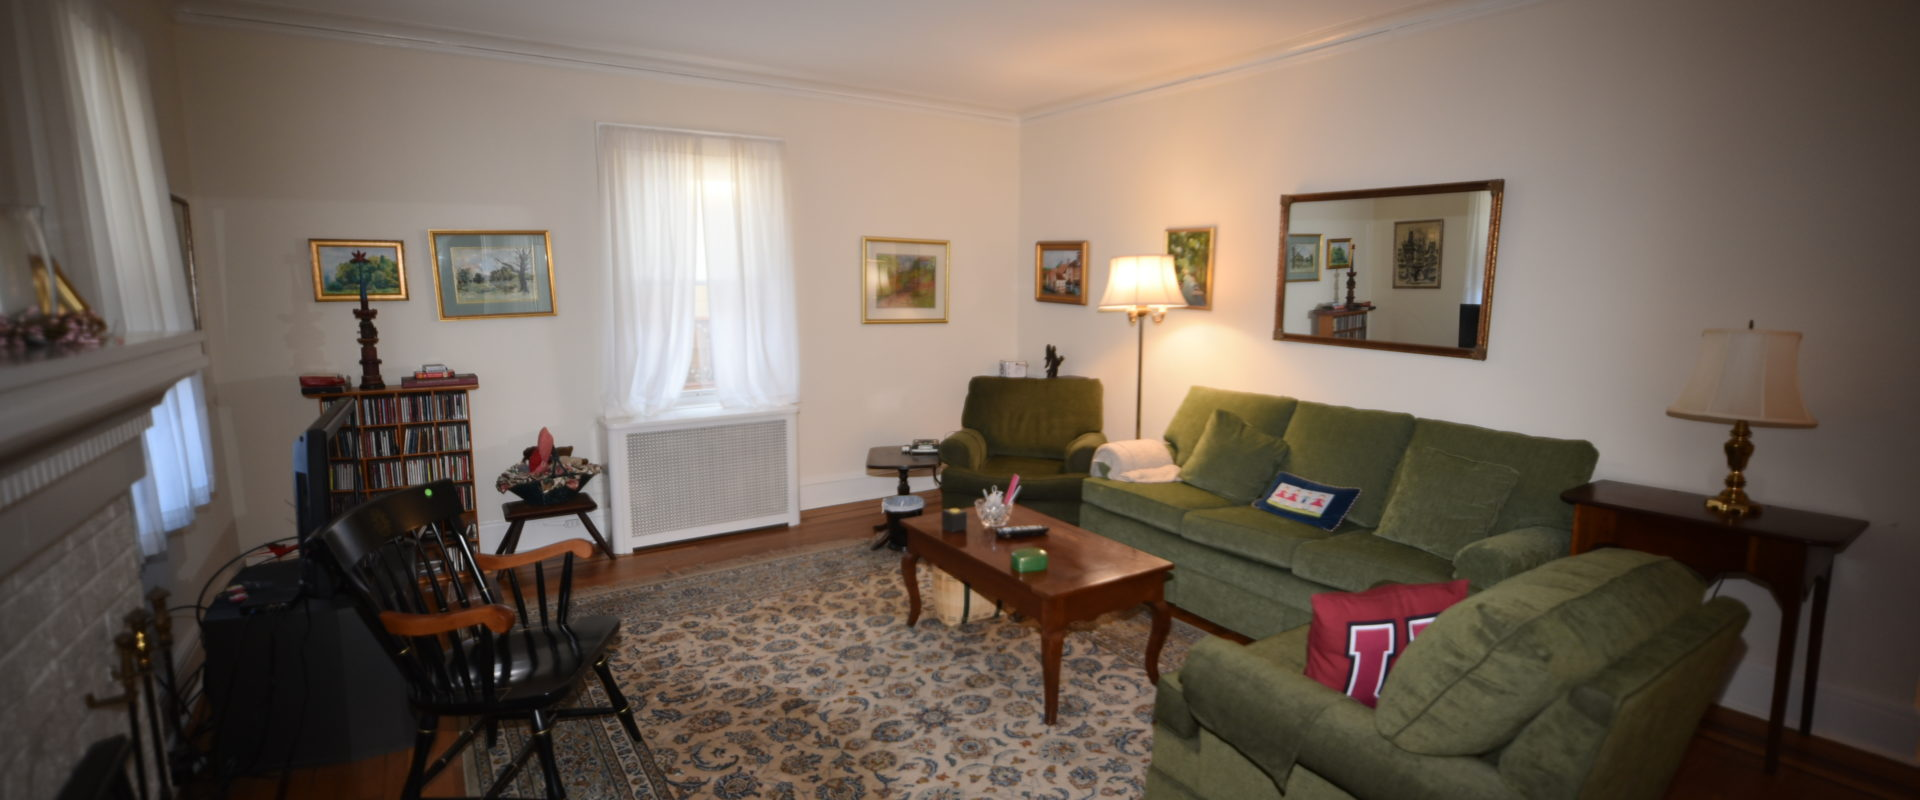 50-60 Georgian Court Elizabeth, NJ 07208